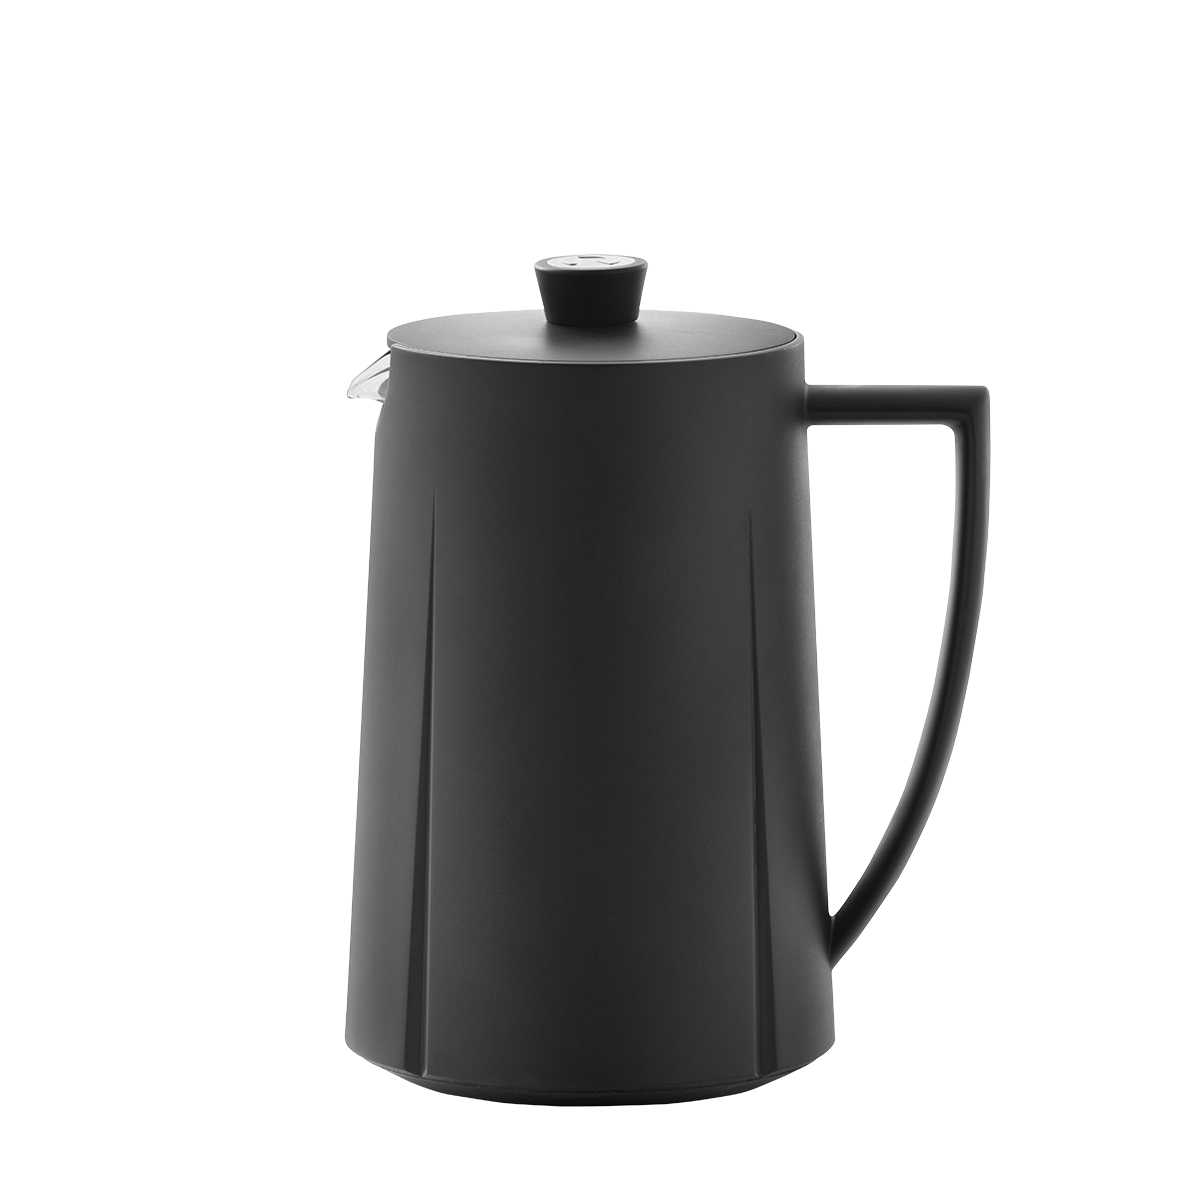 rosendahl coffee plunger serve great coffee with grand cru. Black Bedroom Furniture Sets. Home Design Ideas